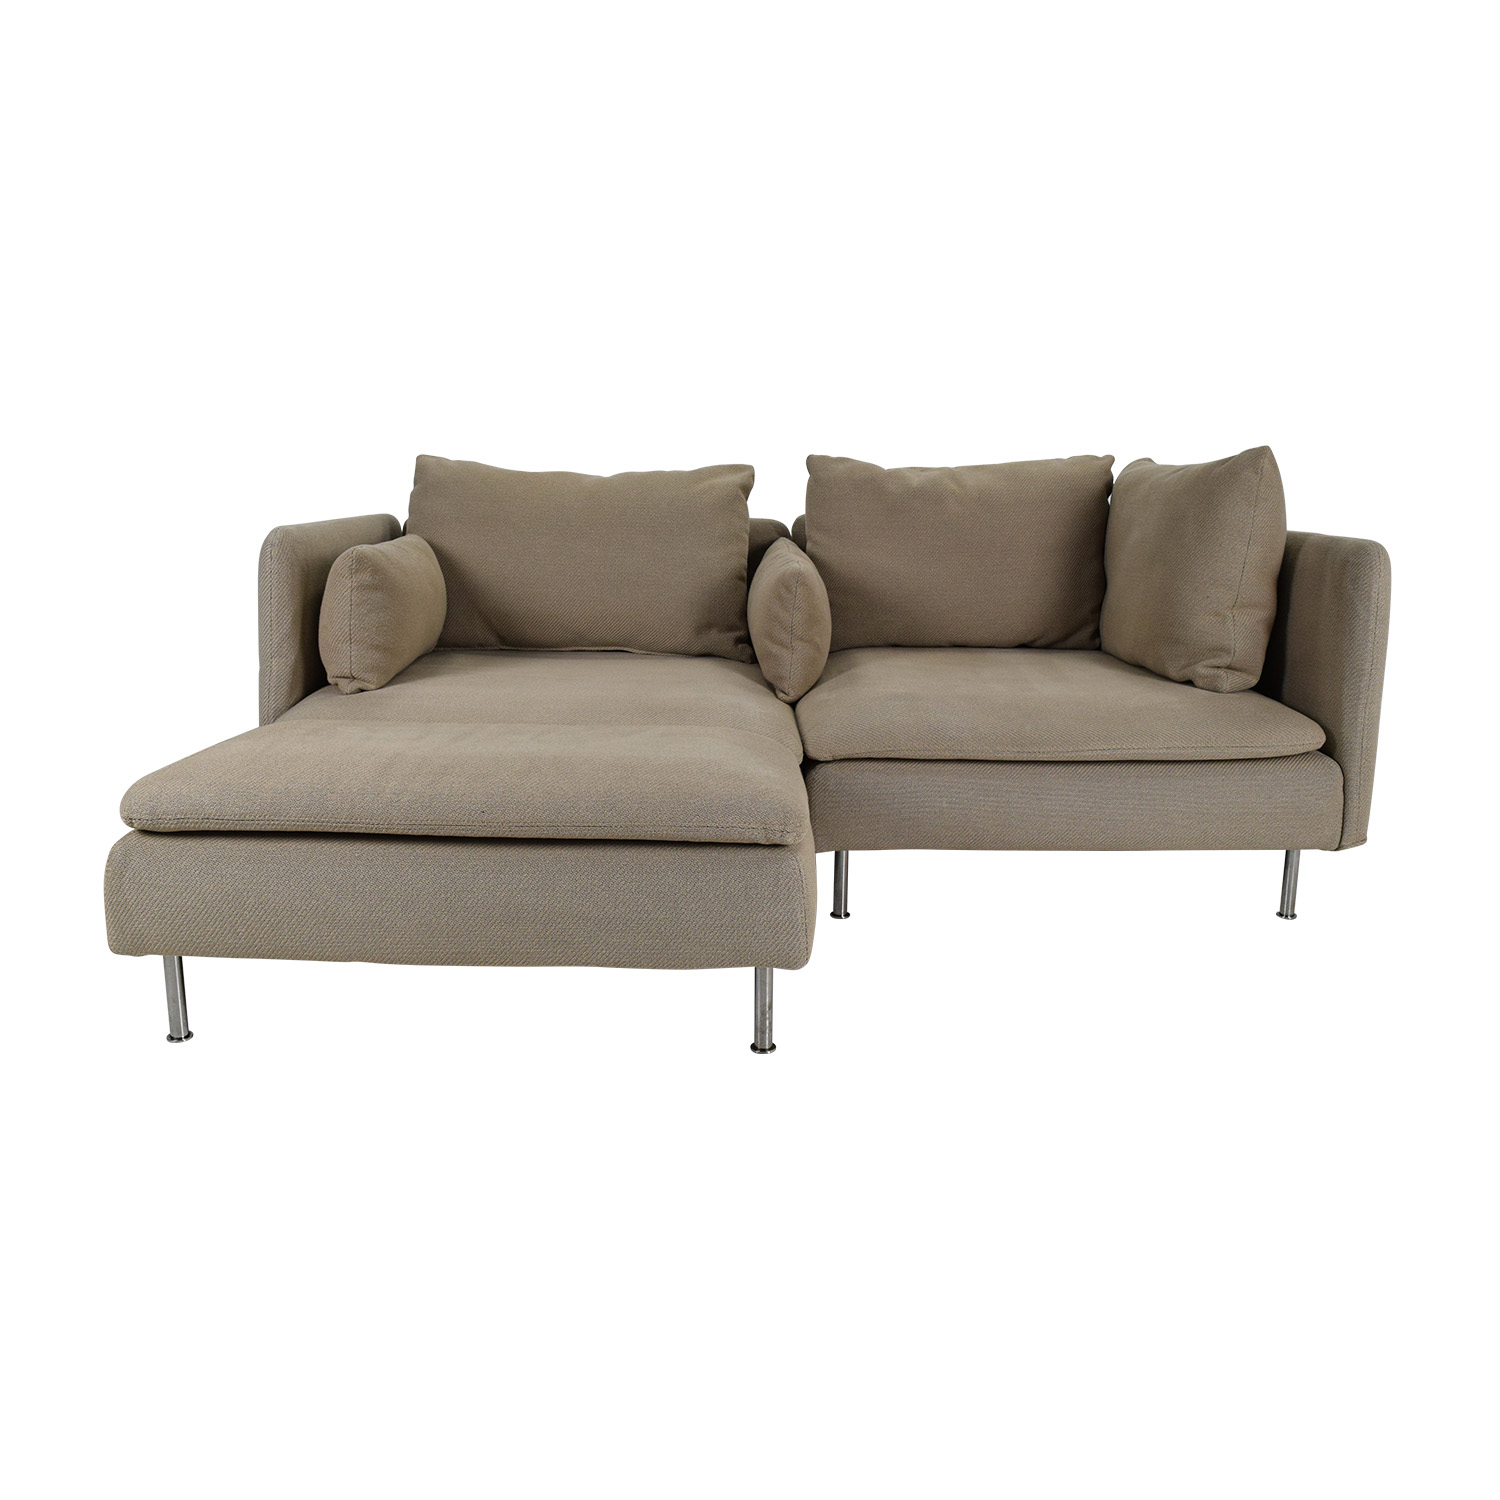 50% OFF - IKEA Soderhamn Sectional Sofa / Sofas